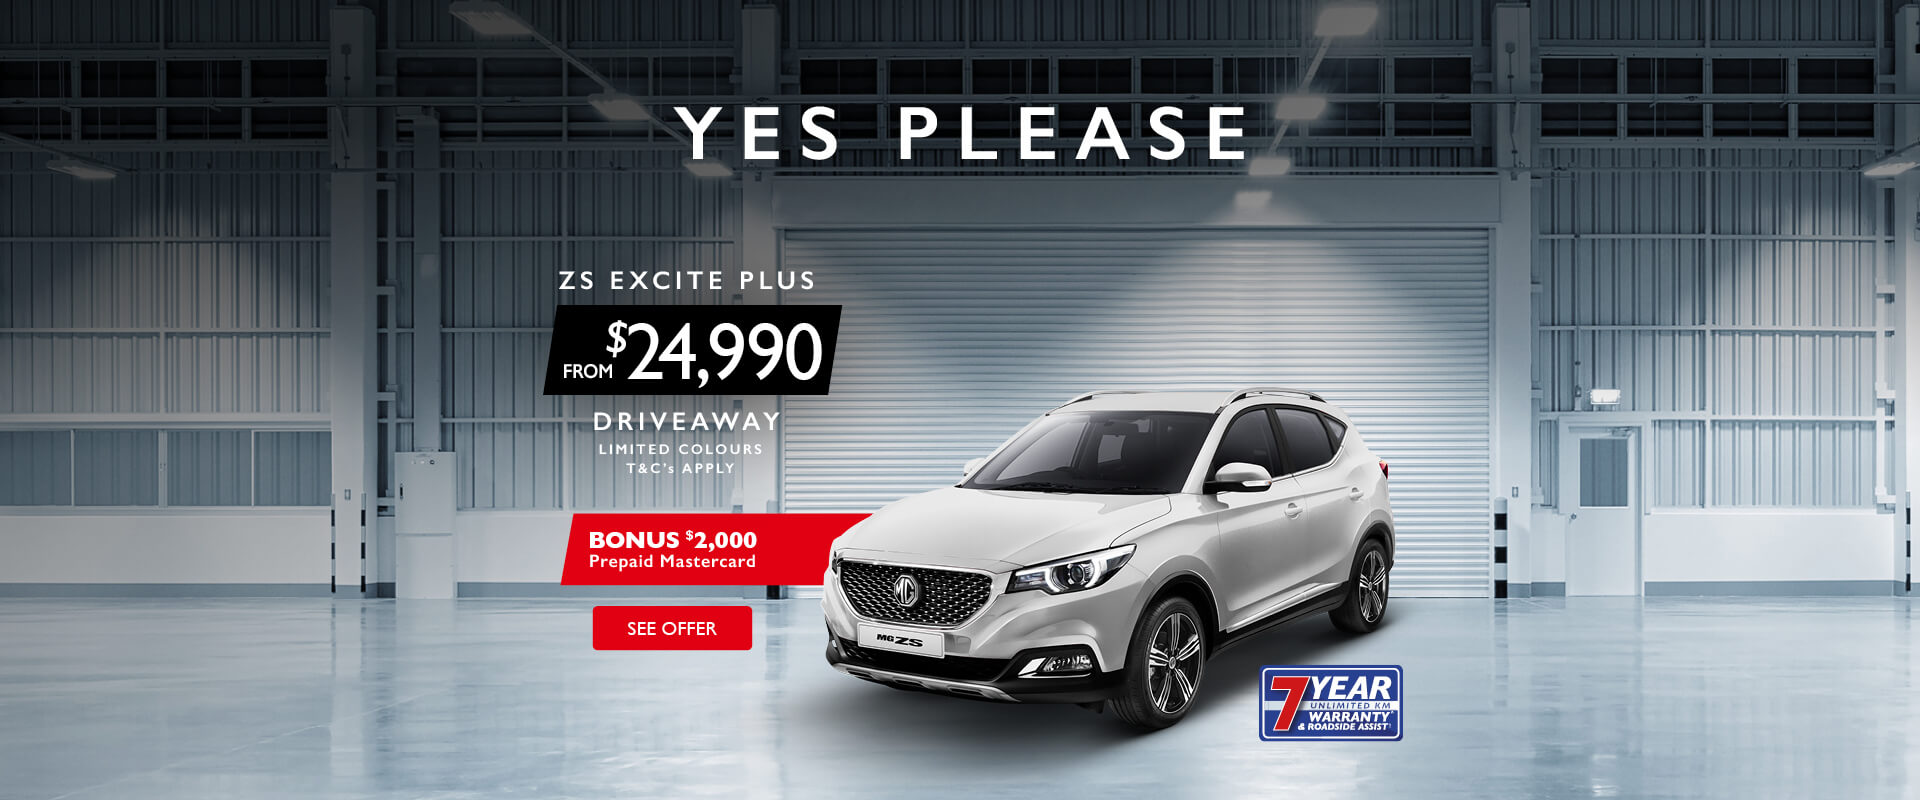 ZS Excite Plus from $24,990 Driveaway. Bonus $2,000 Prepaid Mastercard Offer.